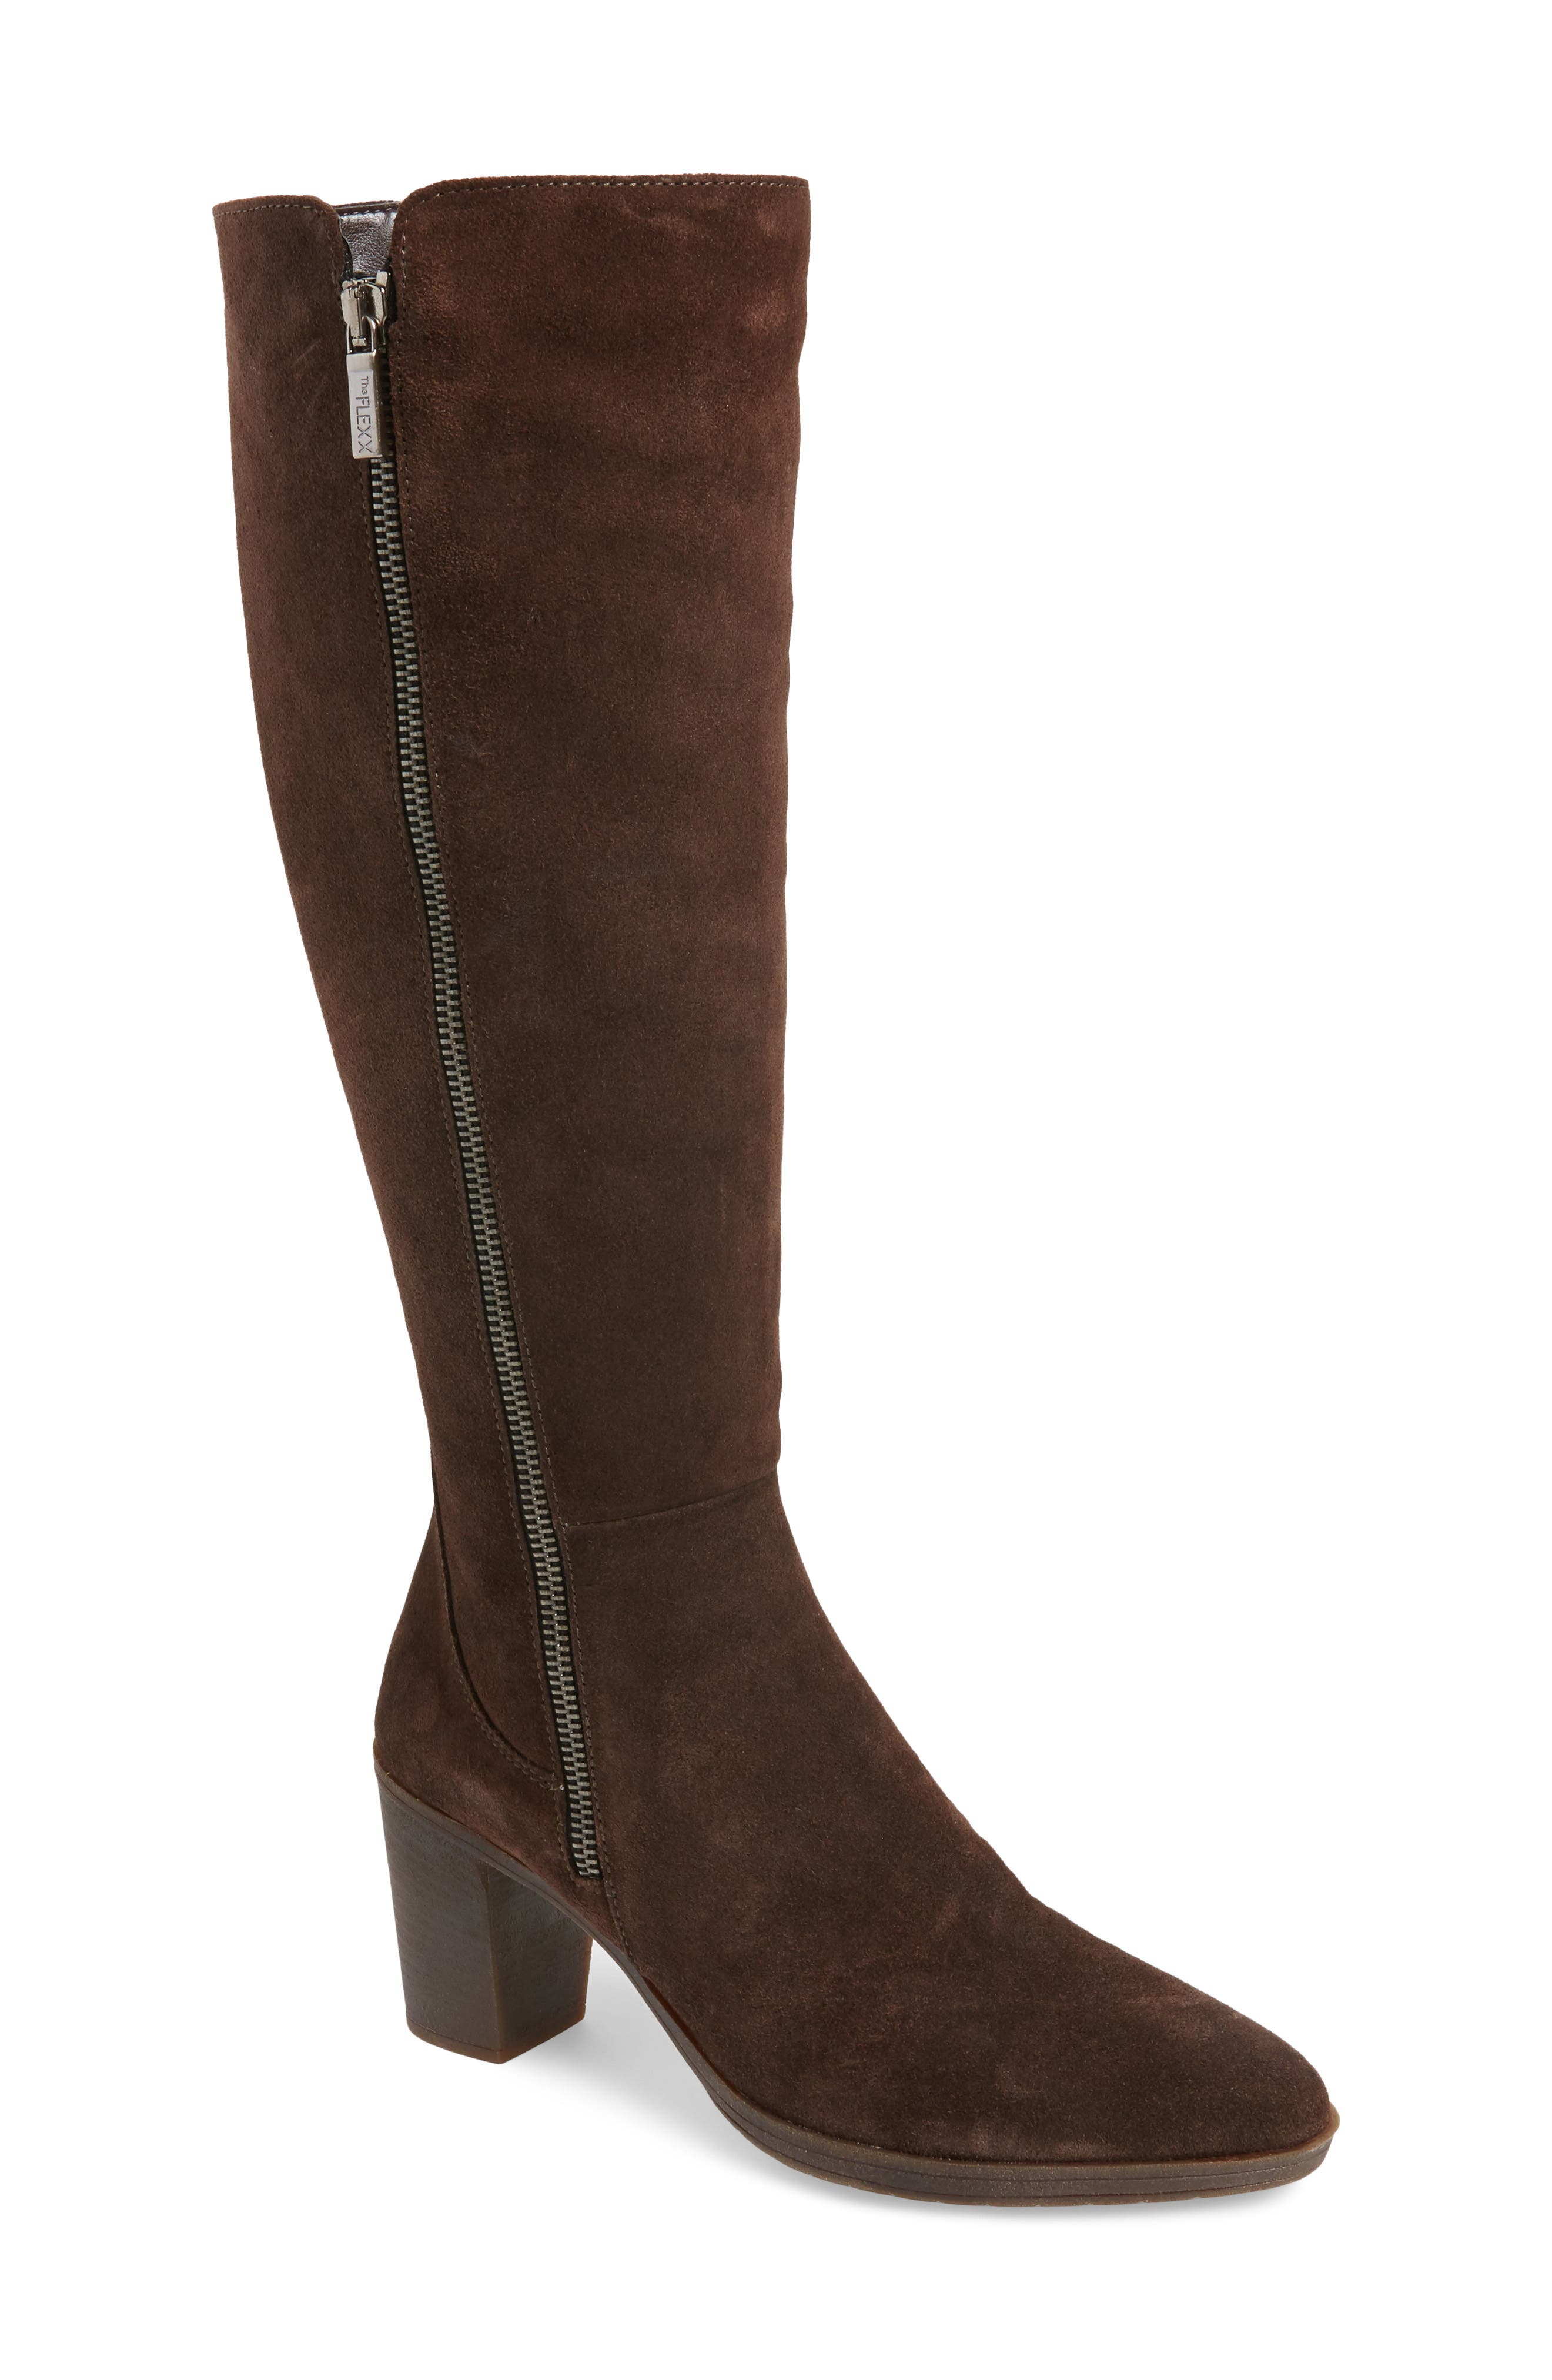 Alternate Image 1 Selected - The FLEXX Pony Up Boot (Women)